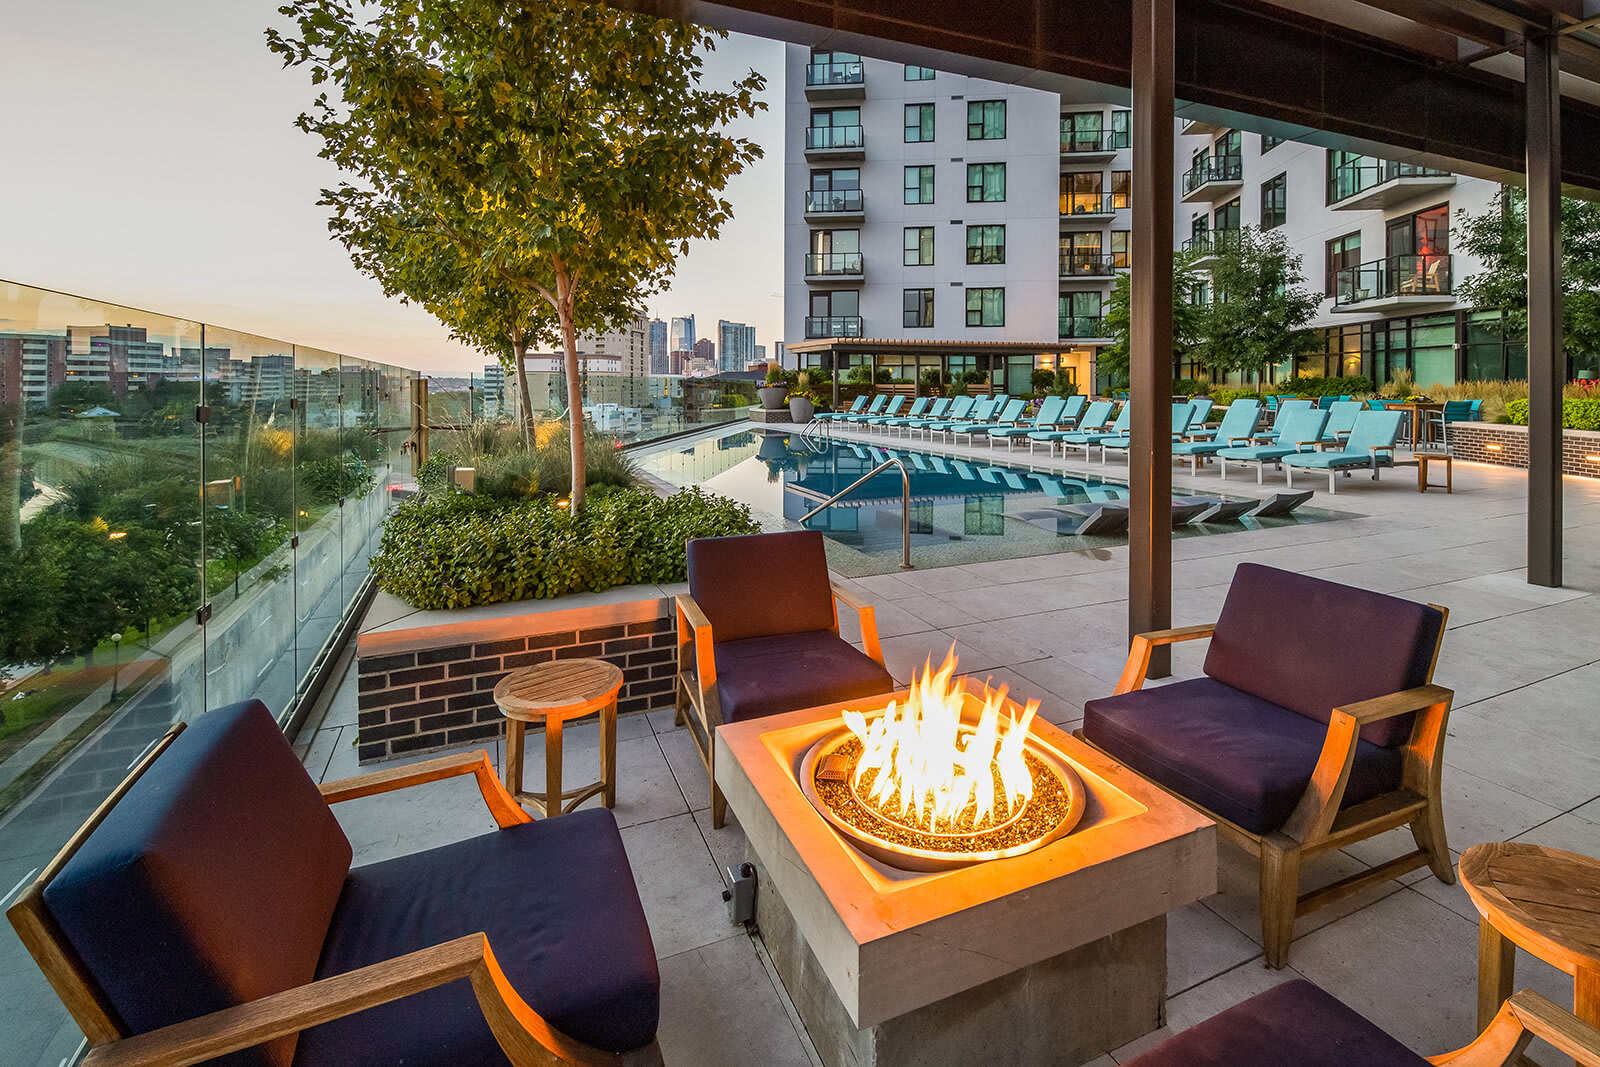 Poolside Entertainment Area With Firepit at 1000 Speer by Windsor, Denver, Colorado